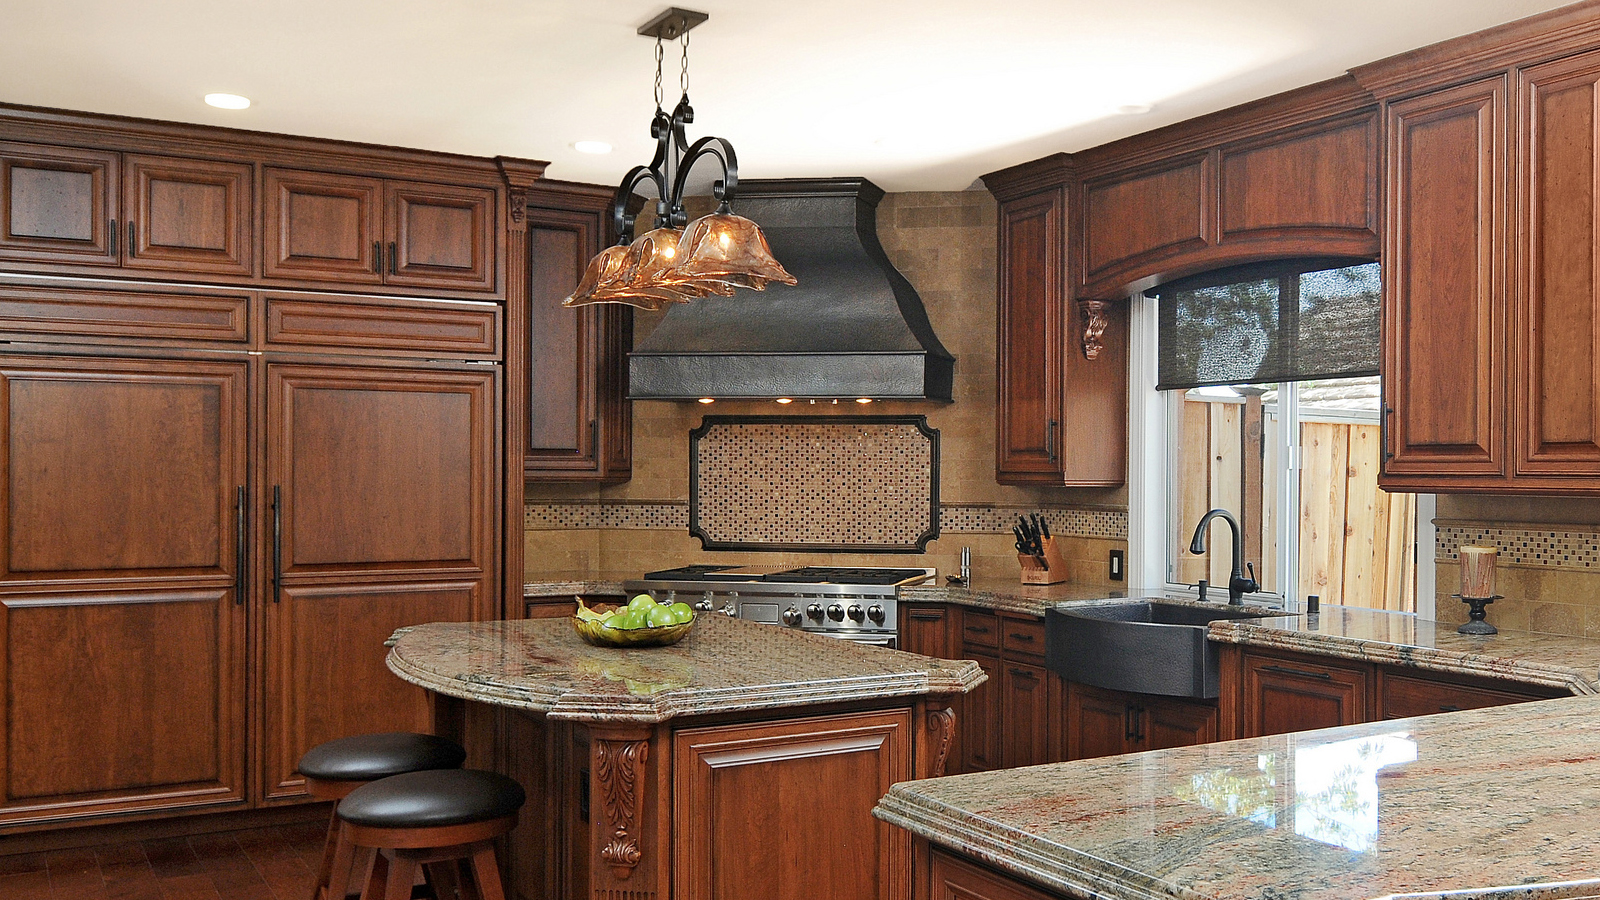 silver creek kitchen cabinets remodelwest silver creek san jose kitchen remodel 5213